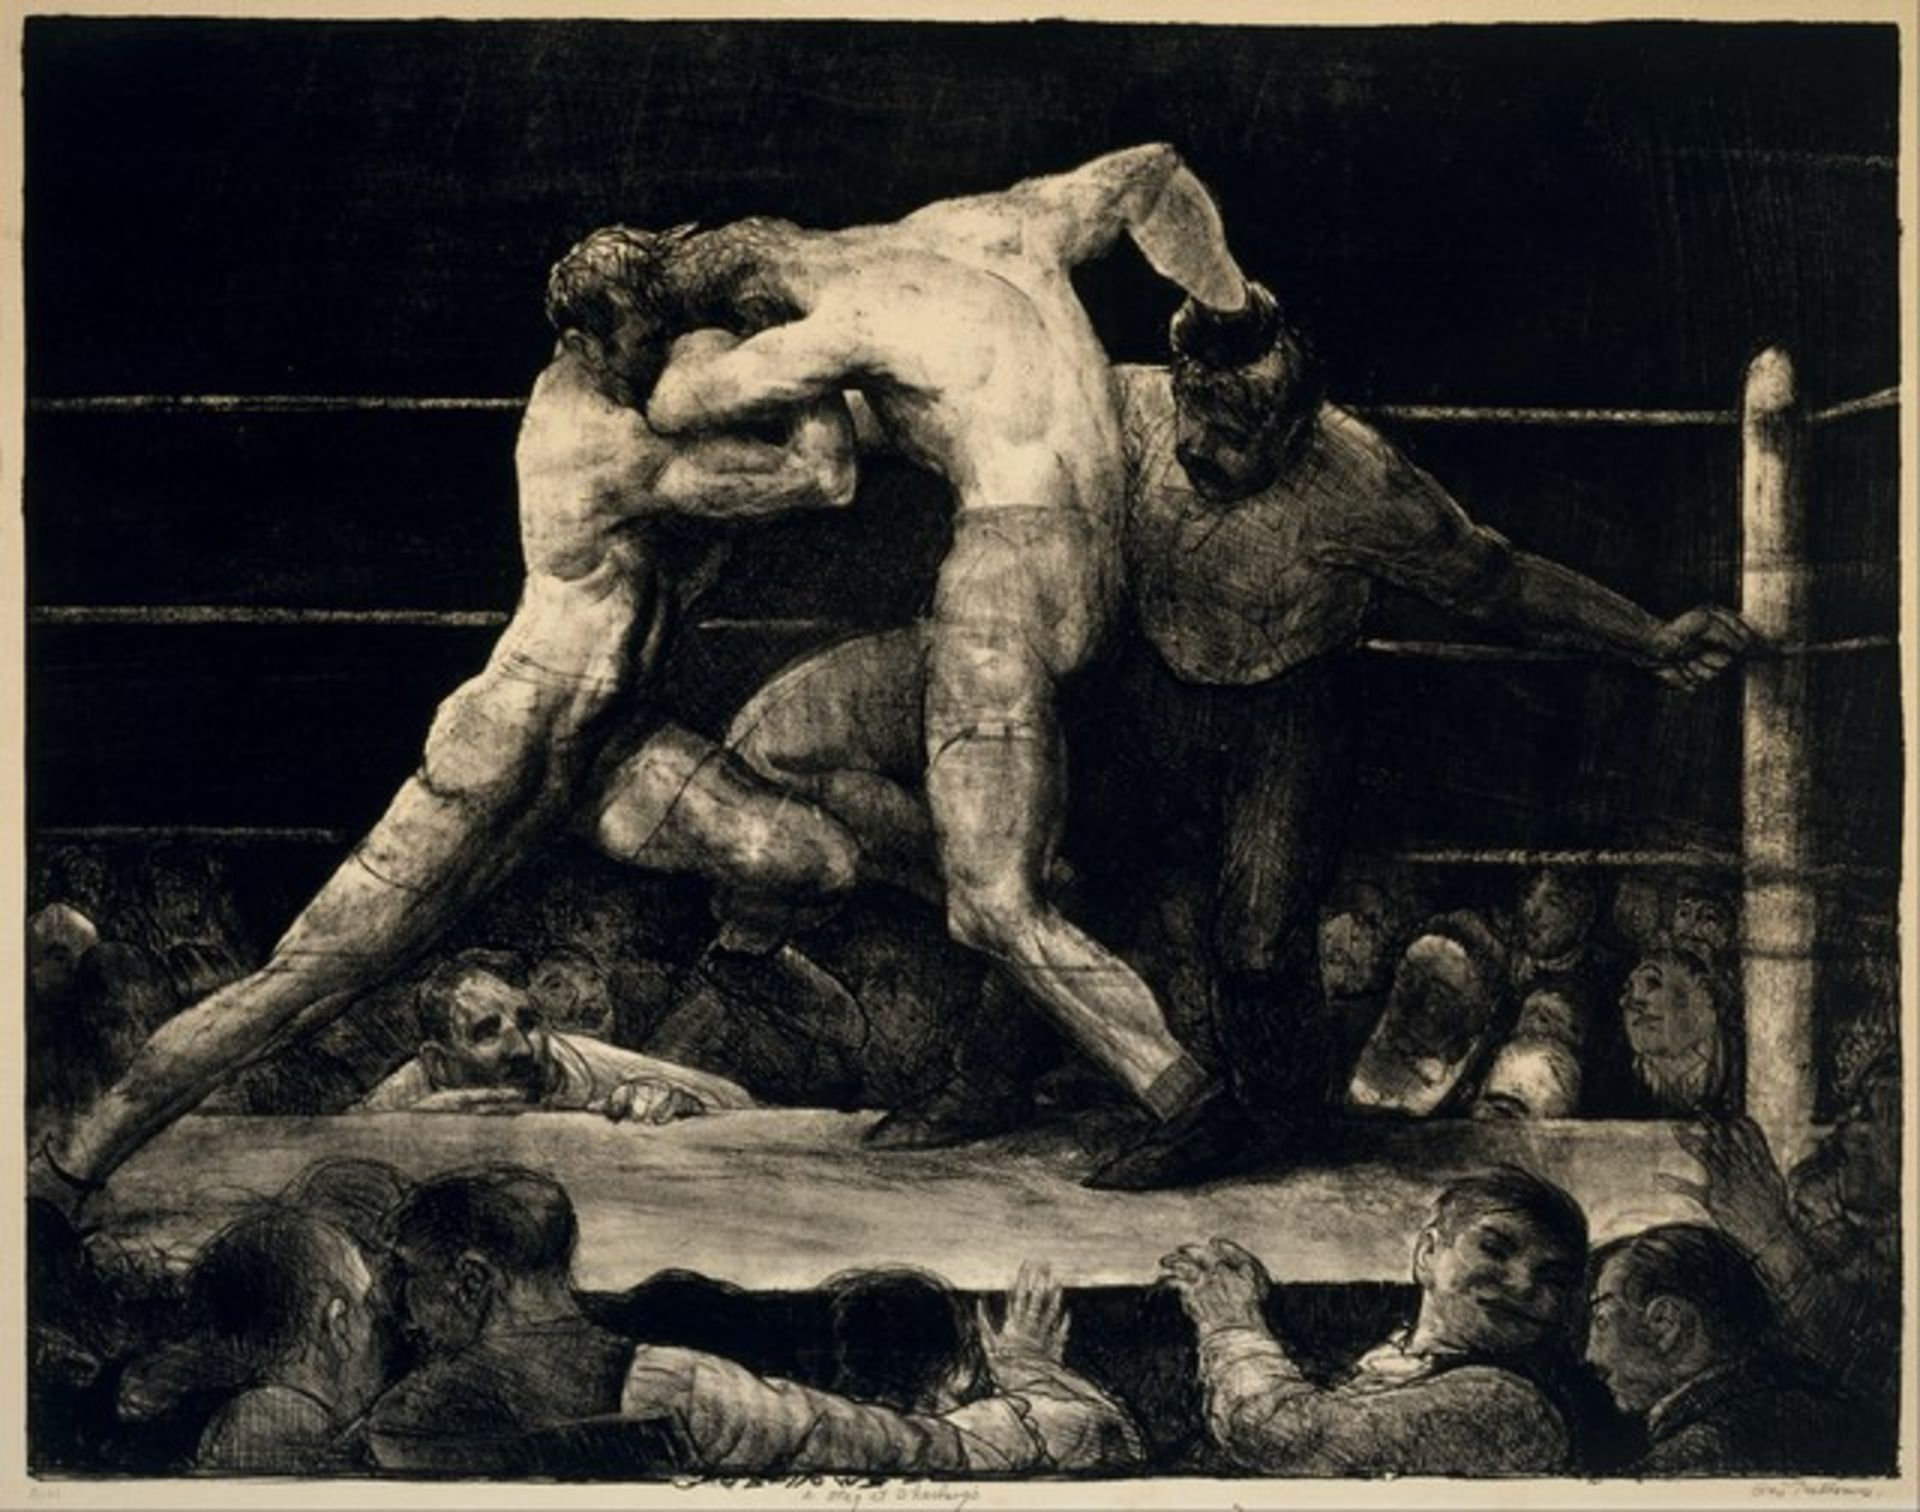 George Bellows - A Stag at Sharkeys